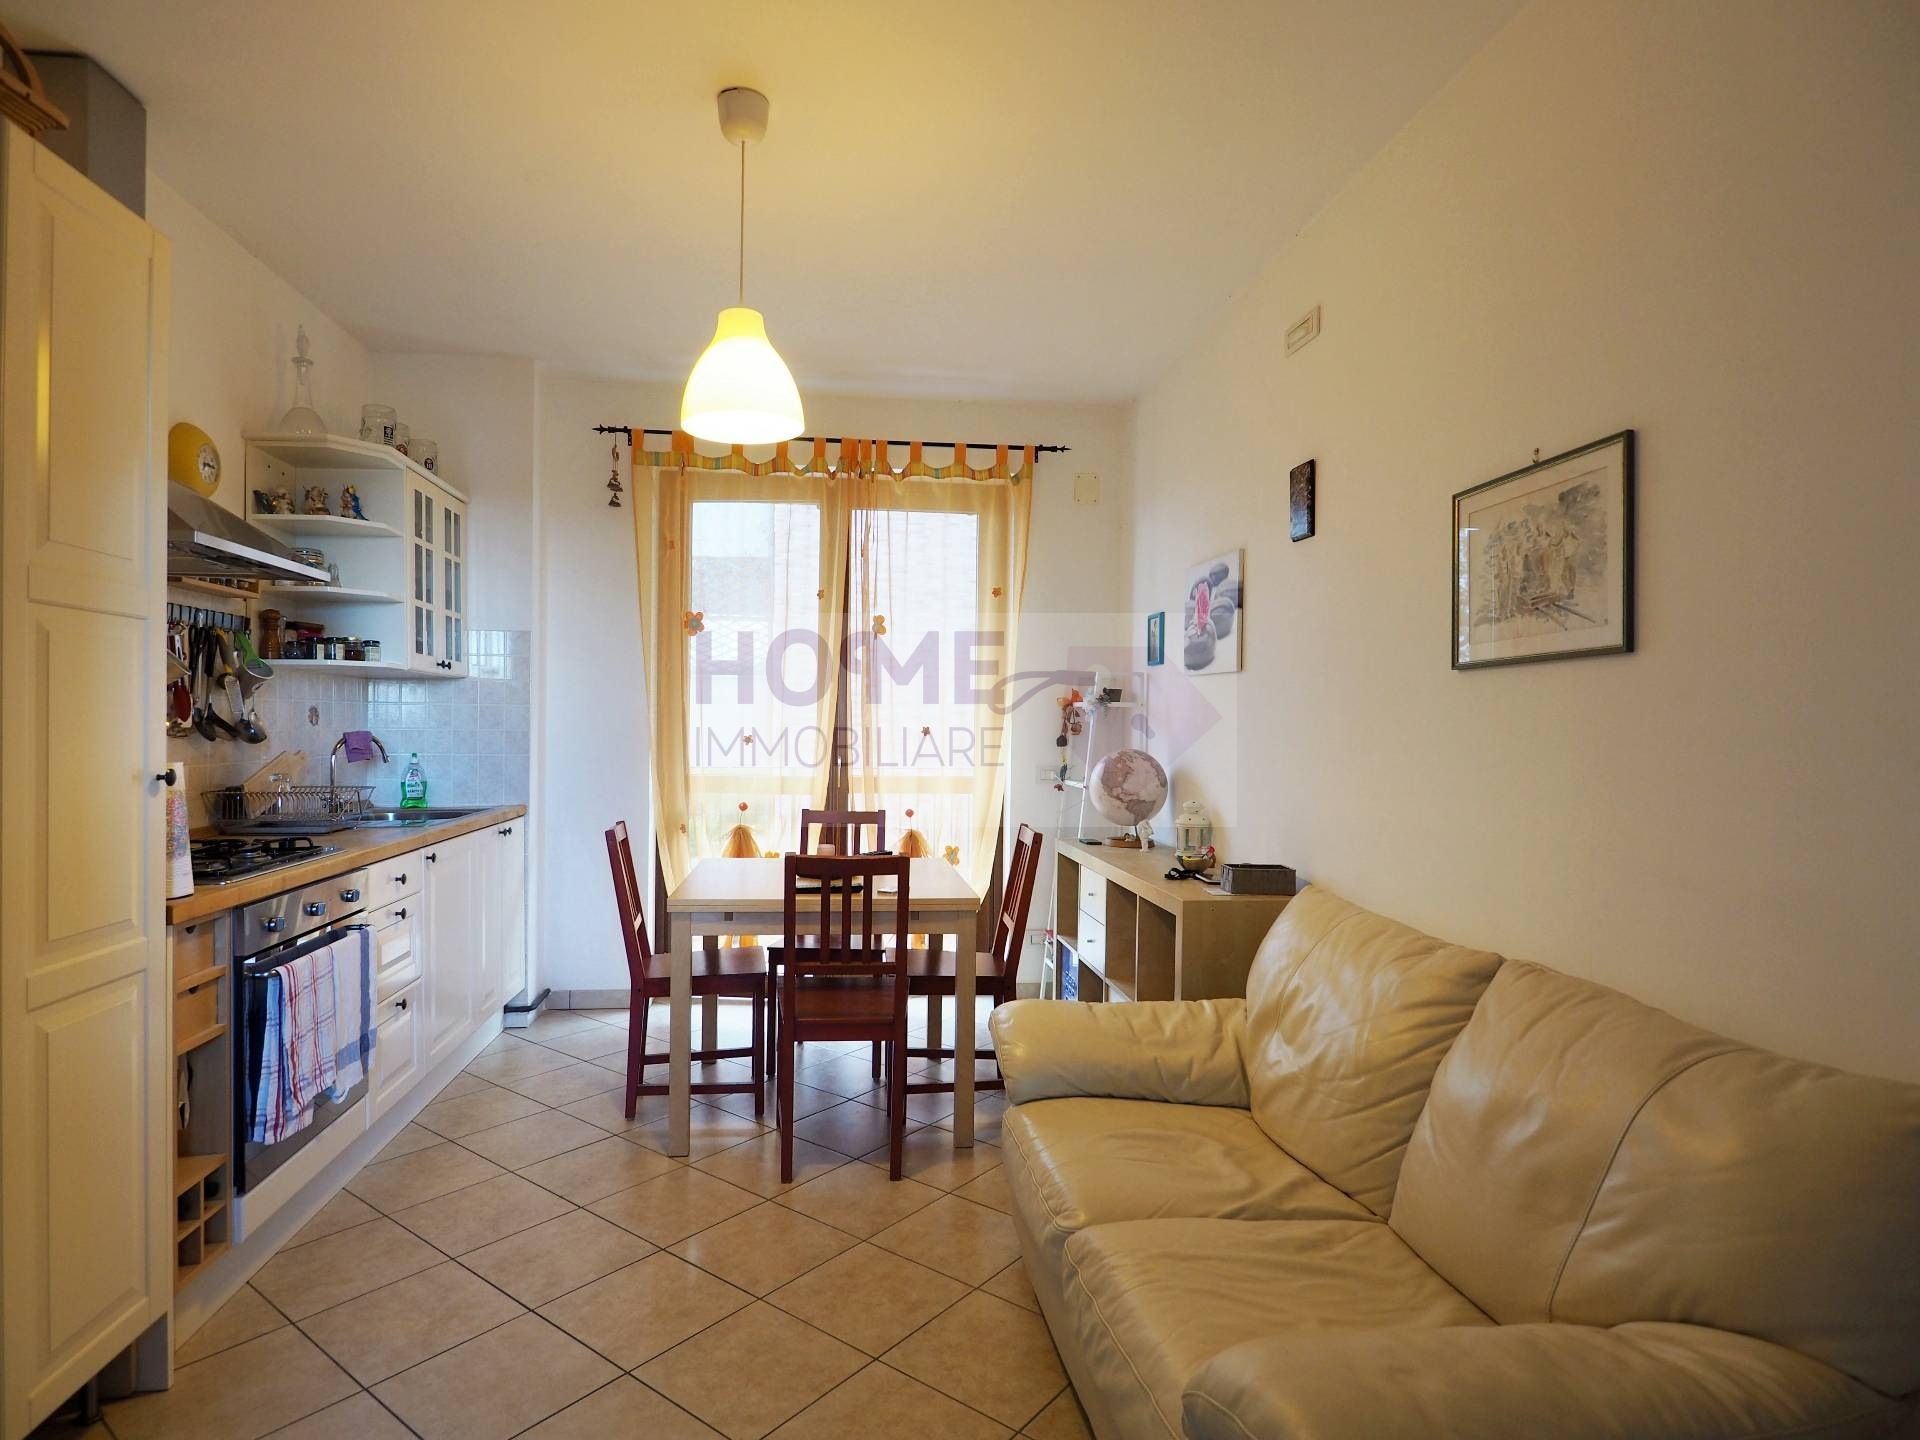 macerata vendita quart: zona vergini home immobiliare srl